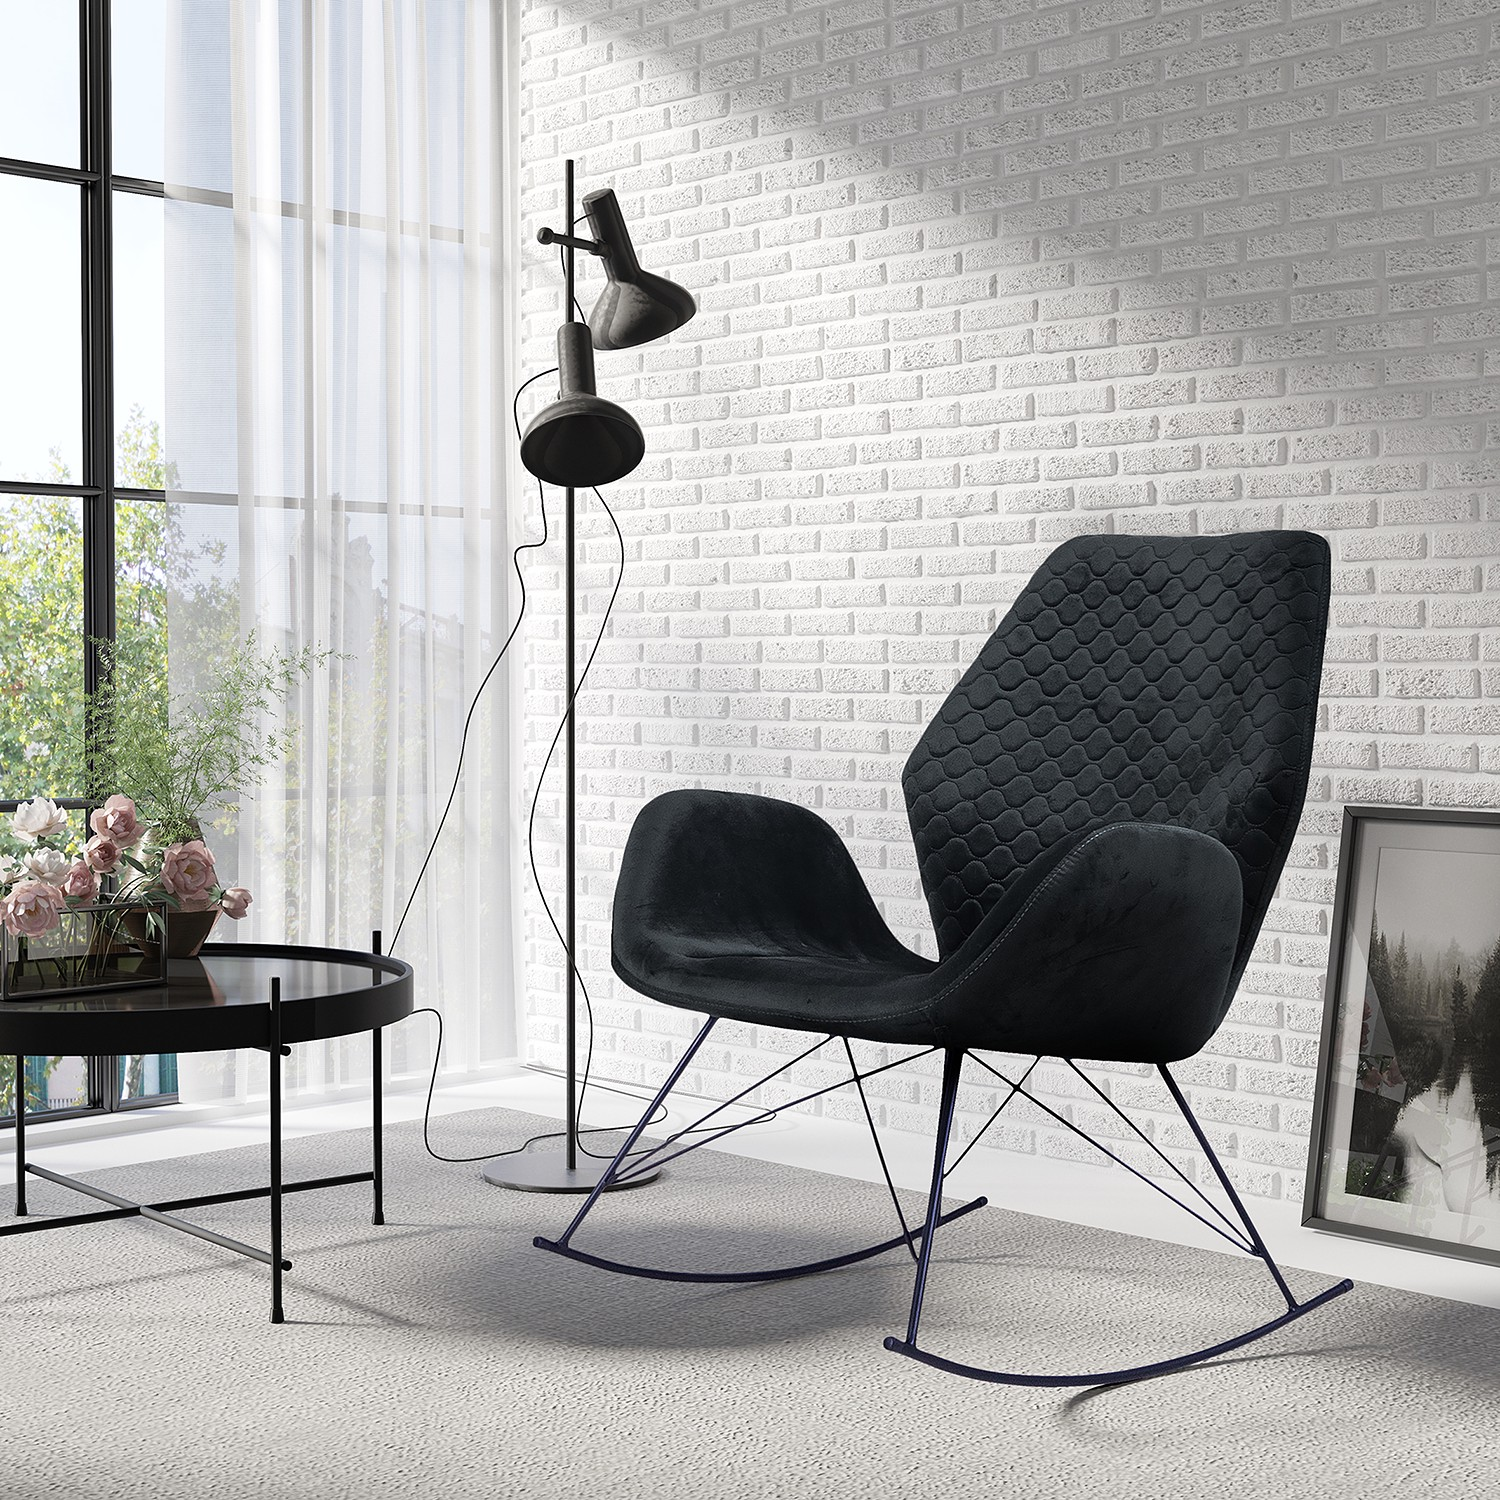 Home24 Schommelfauteuil Bluemont I, home24